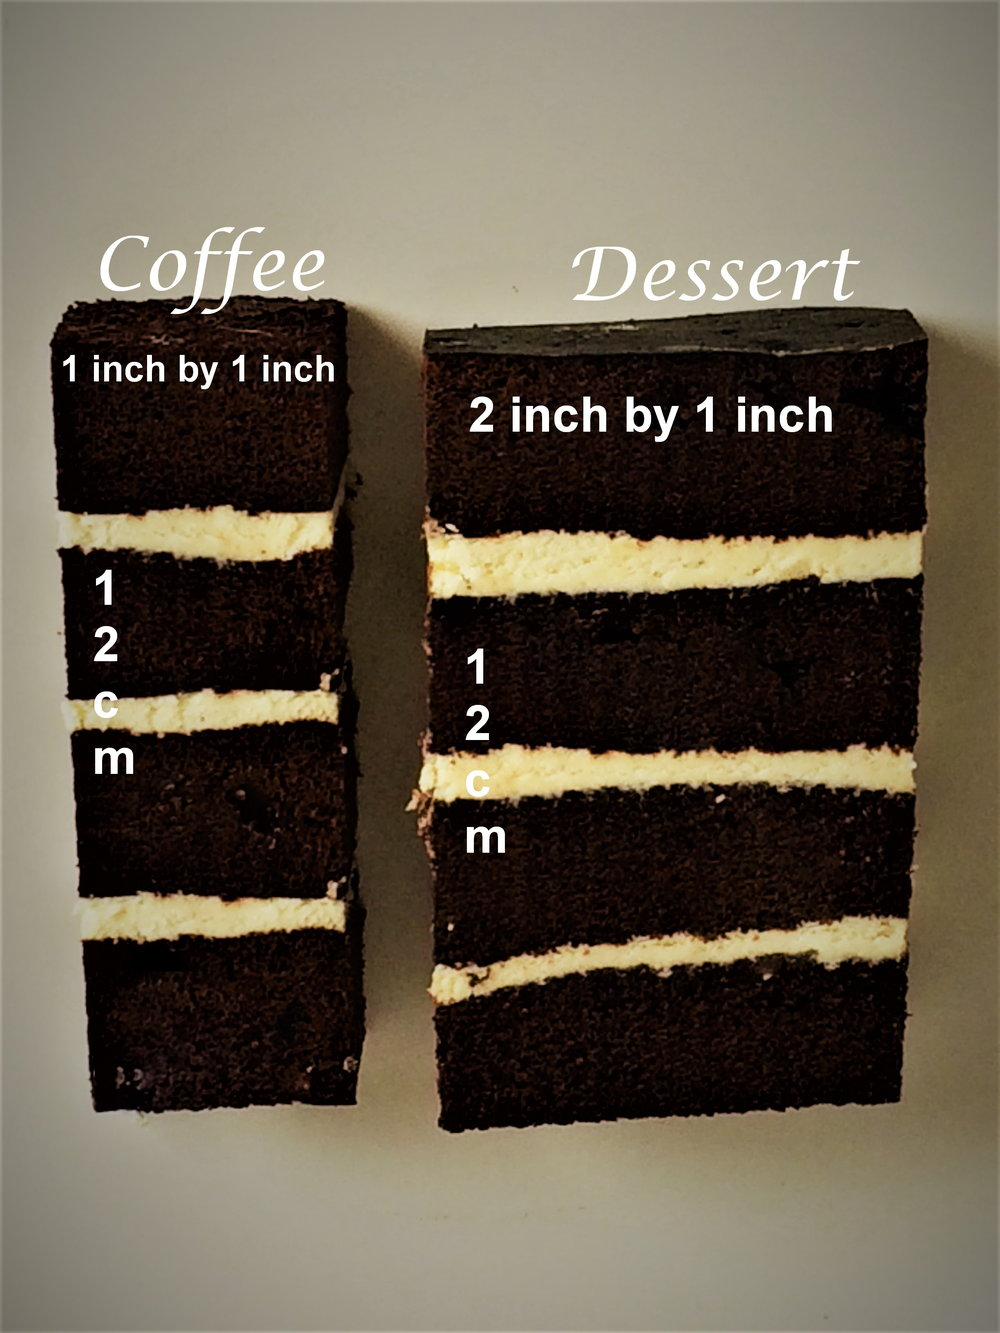 Coffee and dessert portions